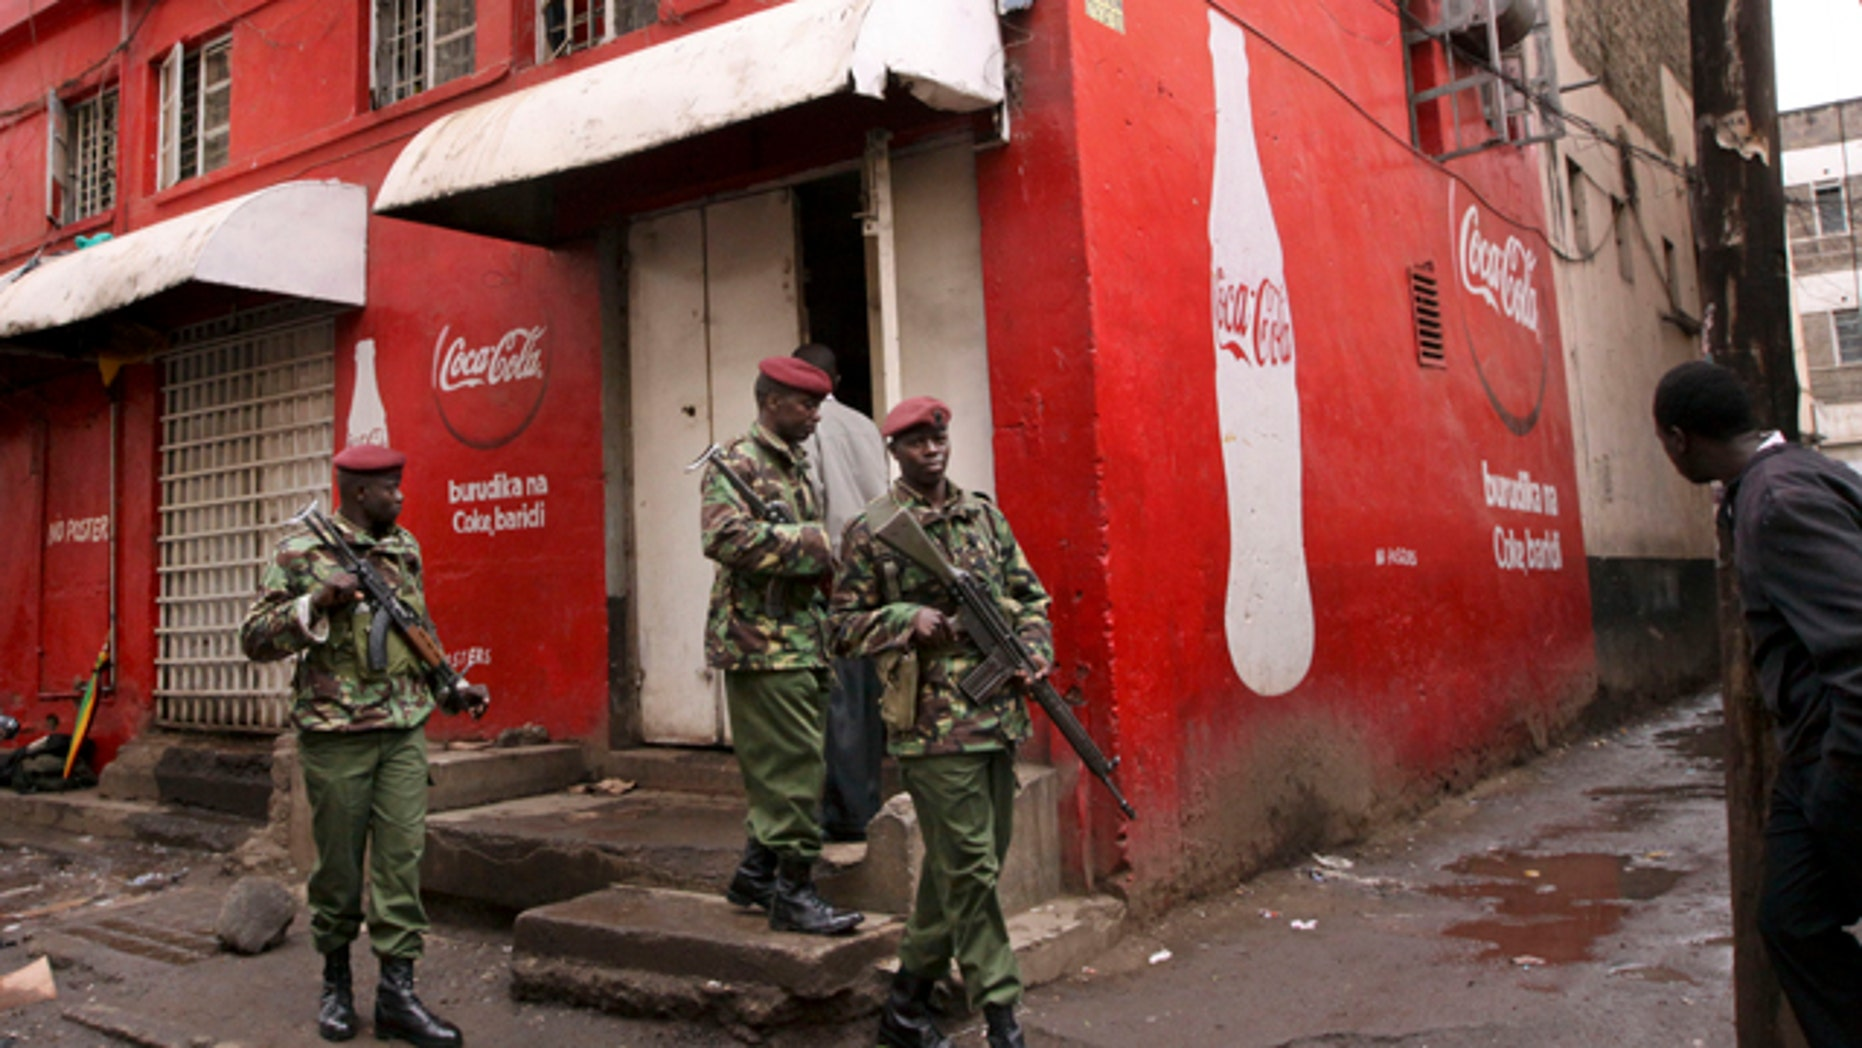 Oct. 24, 2011: Kenyan police patrol outside the pub that was the scene of a suspected grenade blast in downtown Nairobi, Kenya, which a police official said wounded over a dozen people.